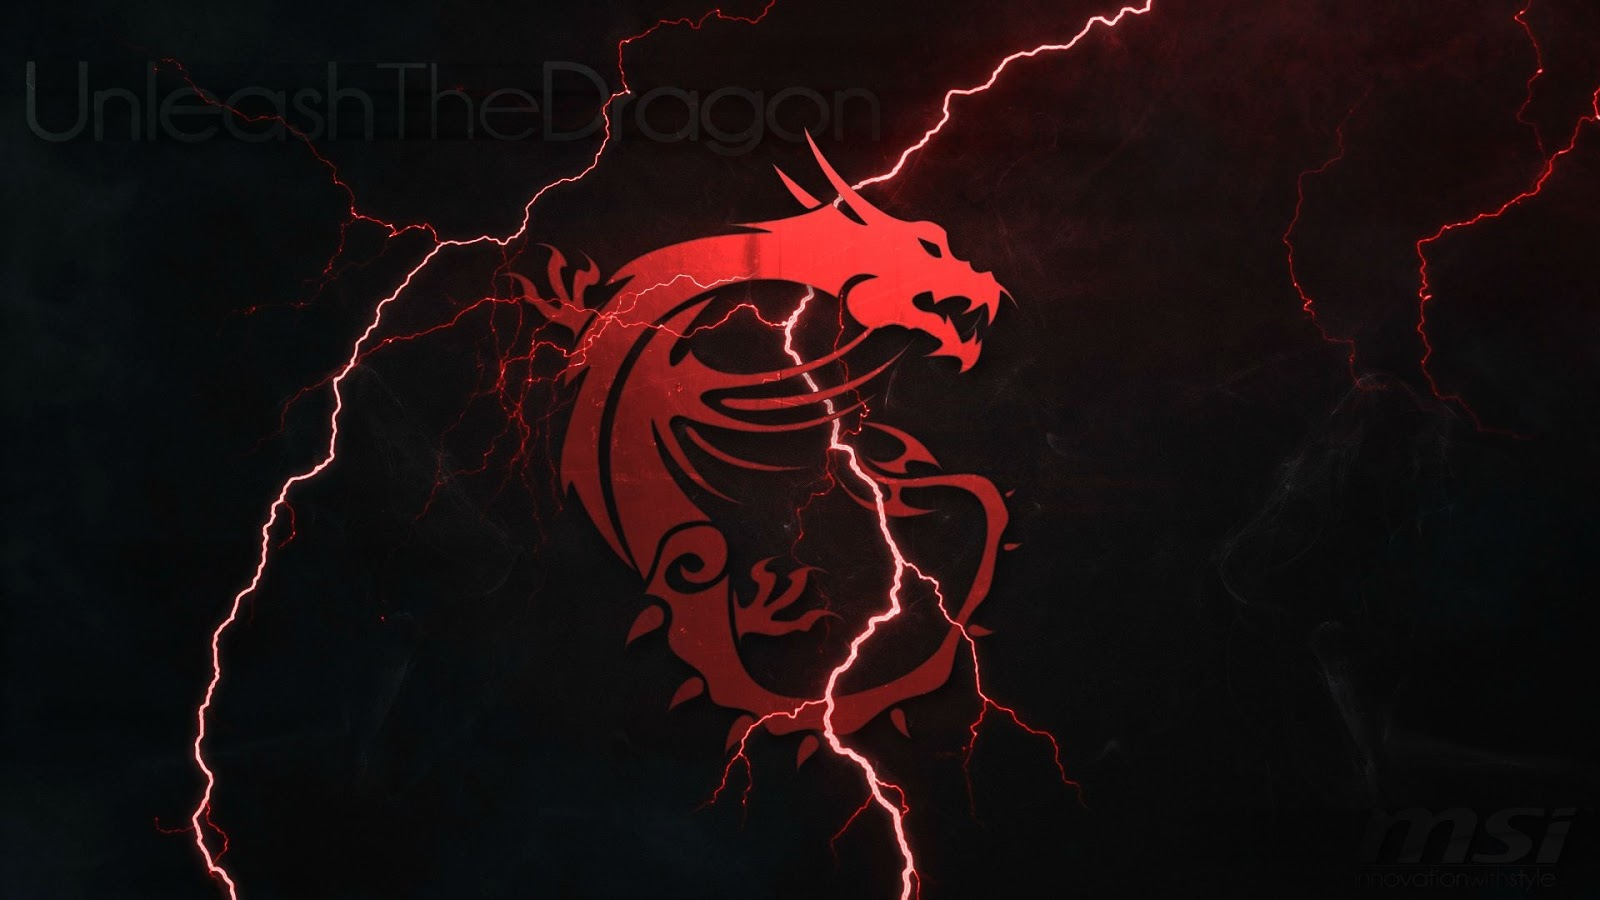 Msi wallpapers and background - Msi Red Dragon Wallpaper Wallpapersafari